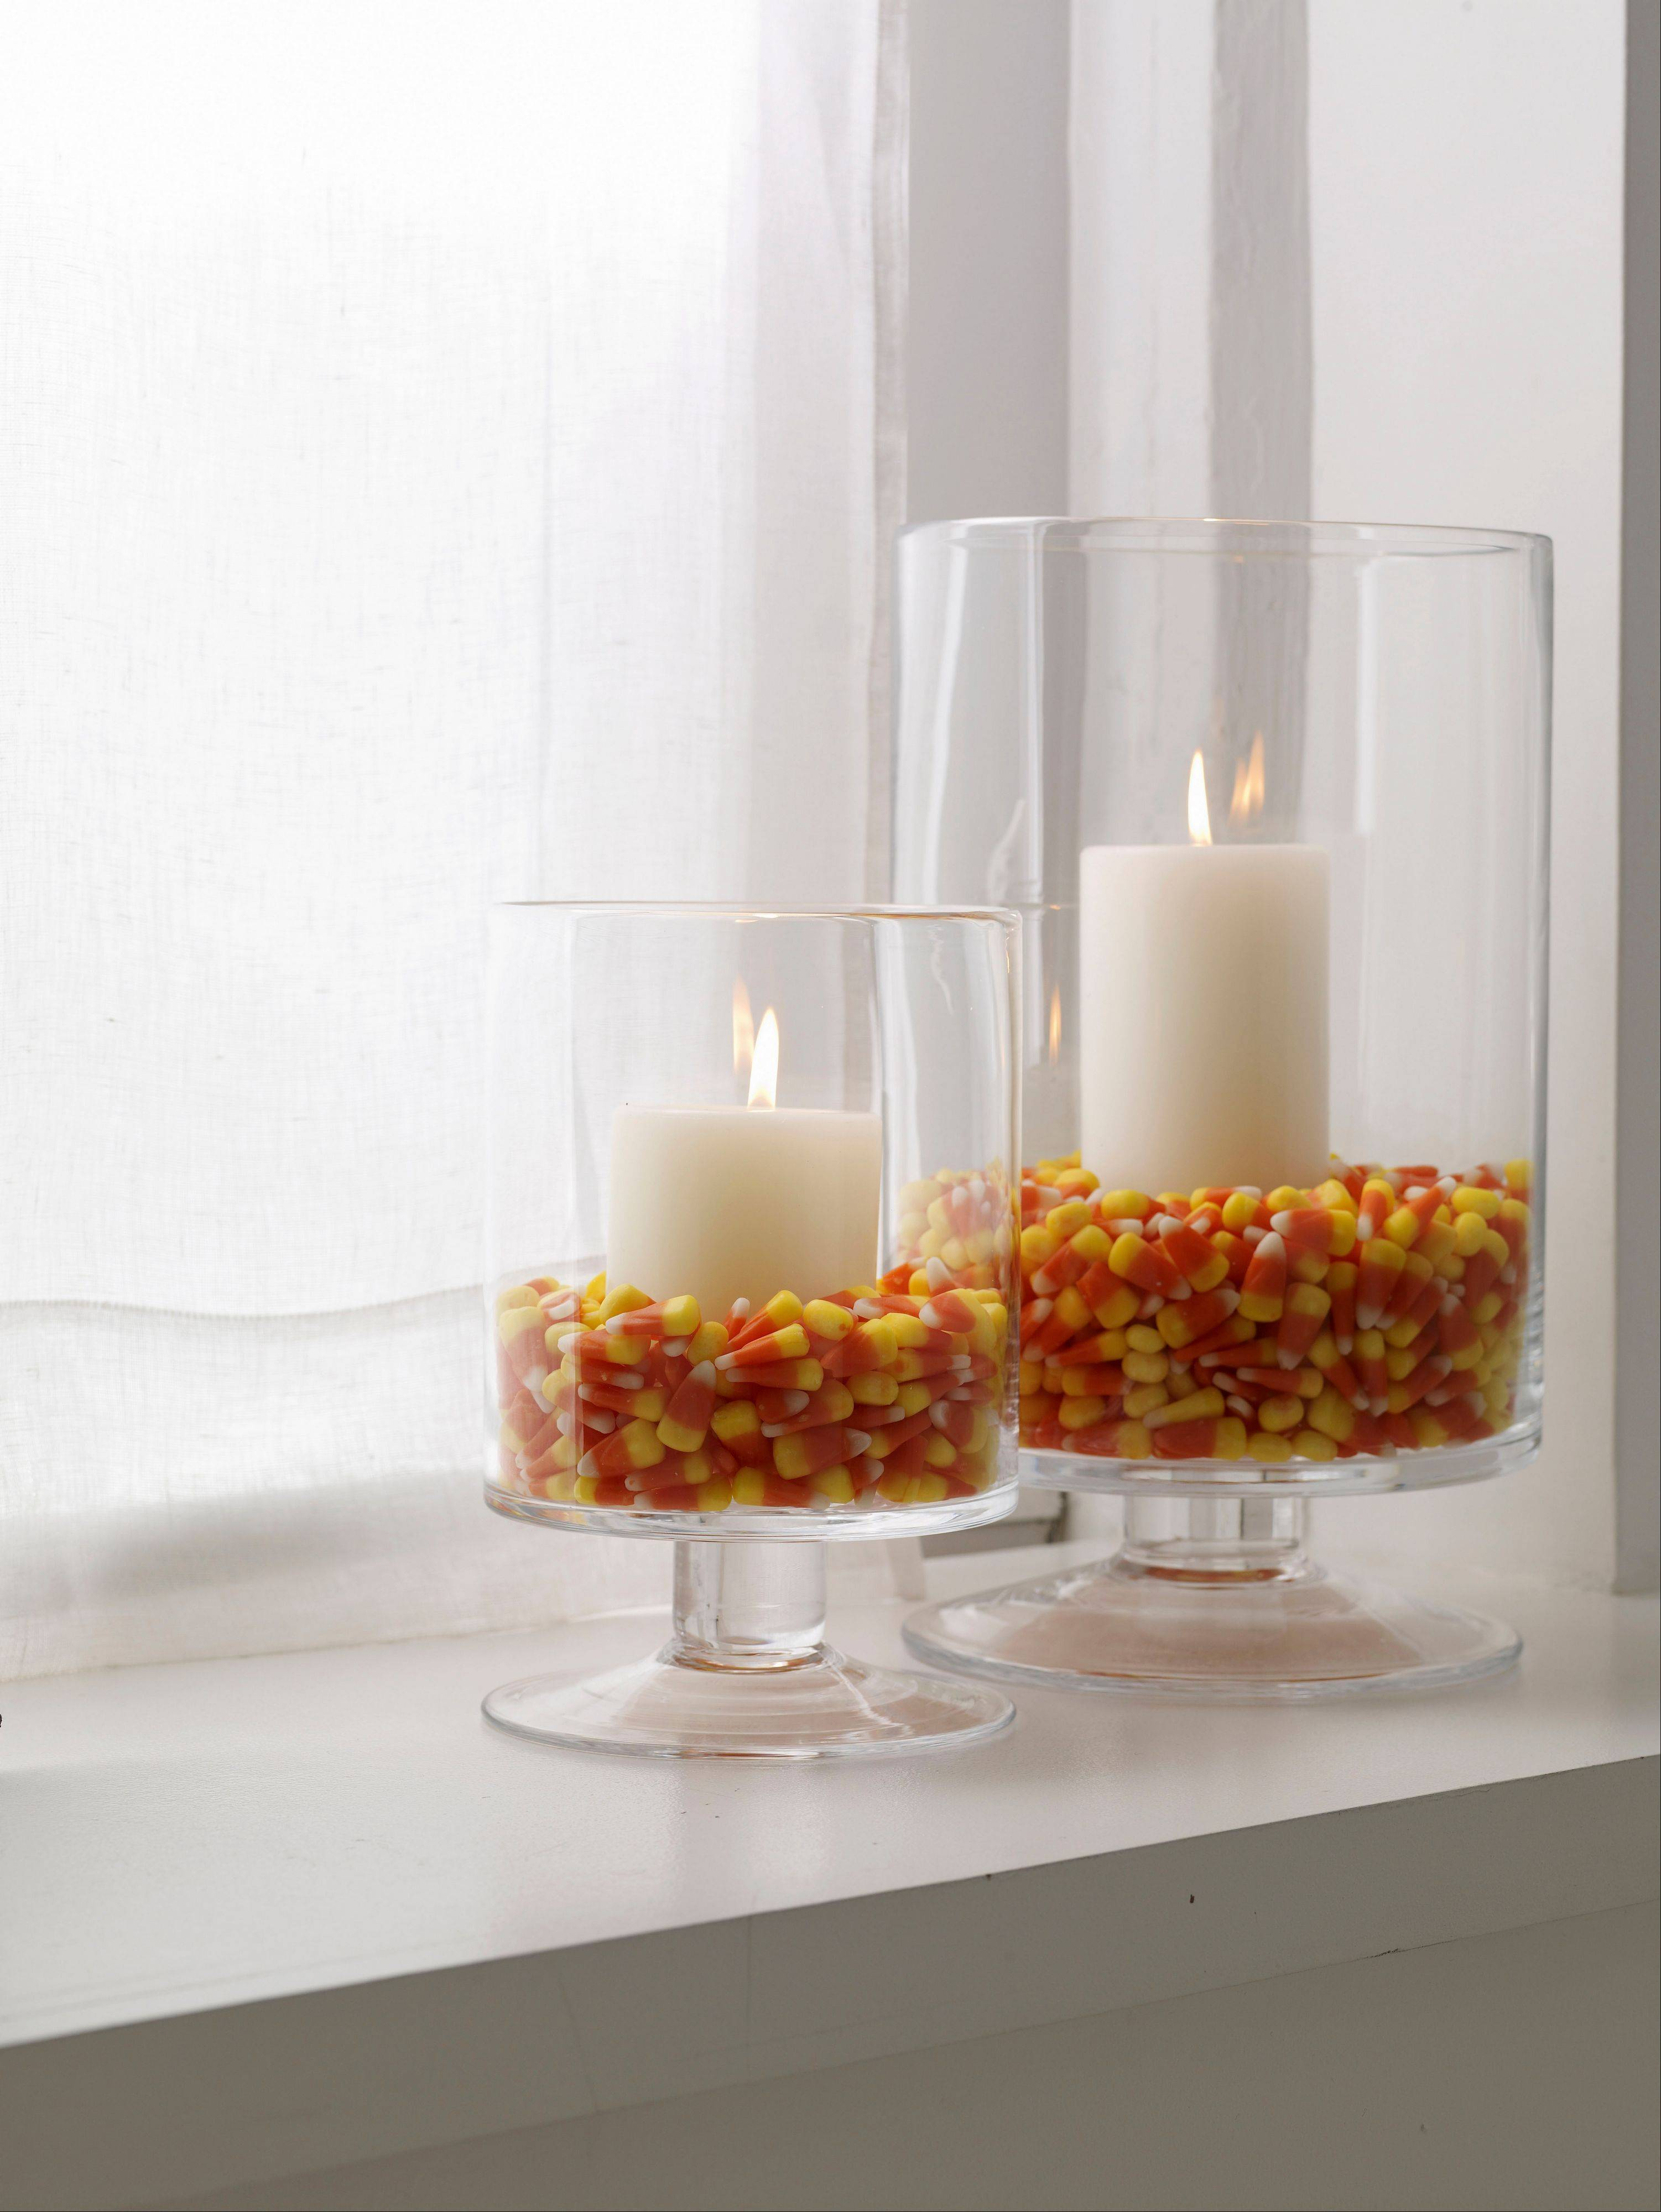 Glass hurricanes filled with colorful candy corn and nestled pillar candles make an interesting tabletop display, as suggested by Woman's Day magazine's craft editors.